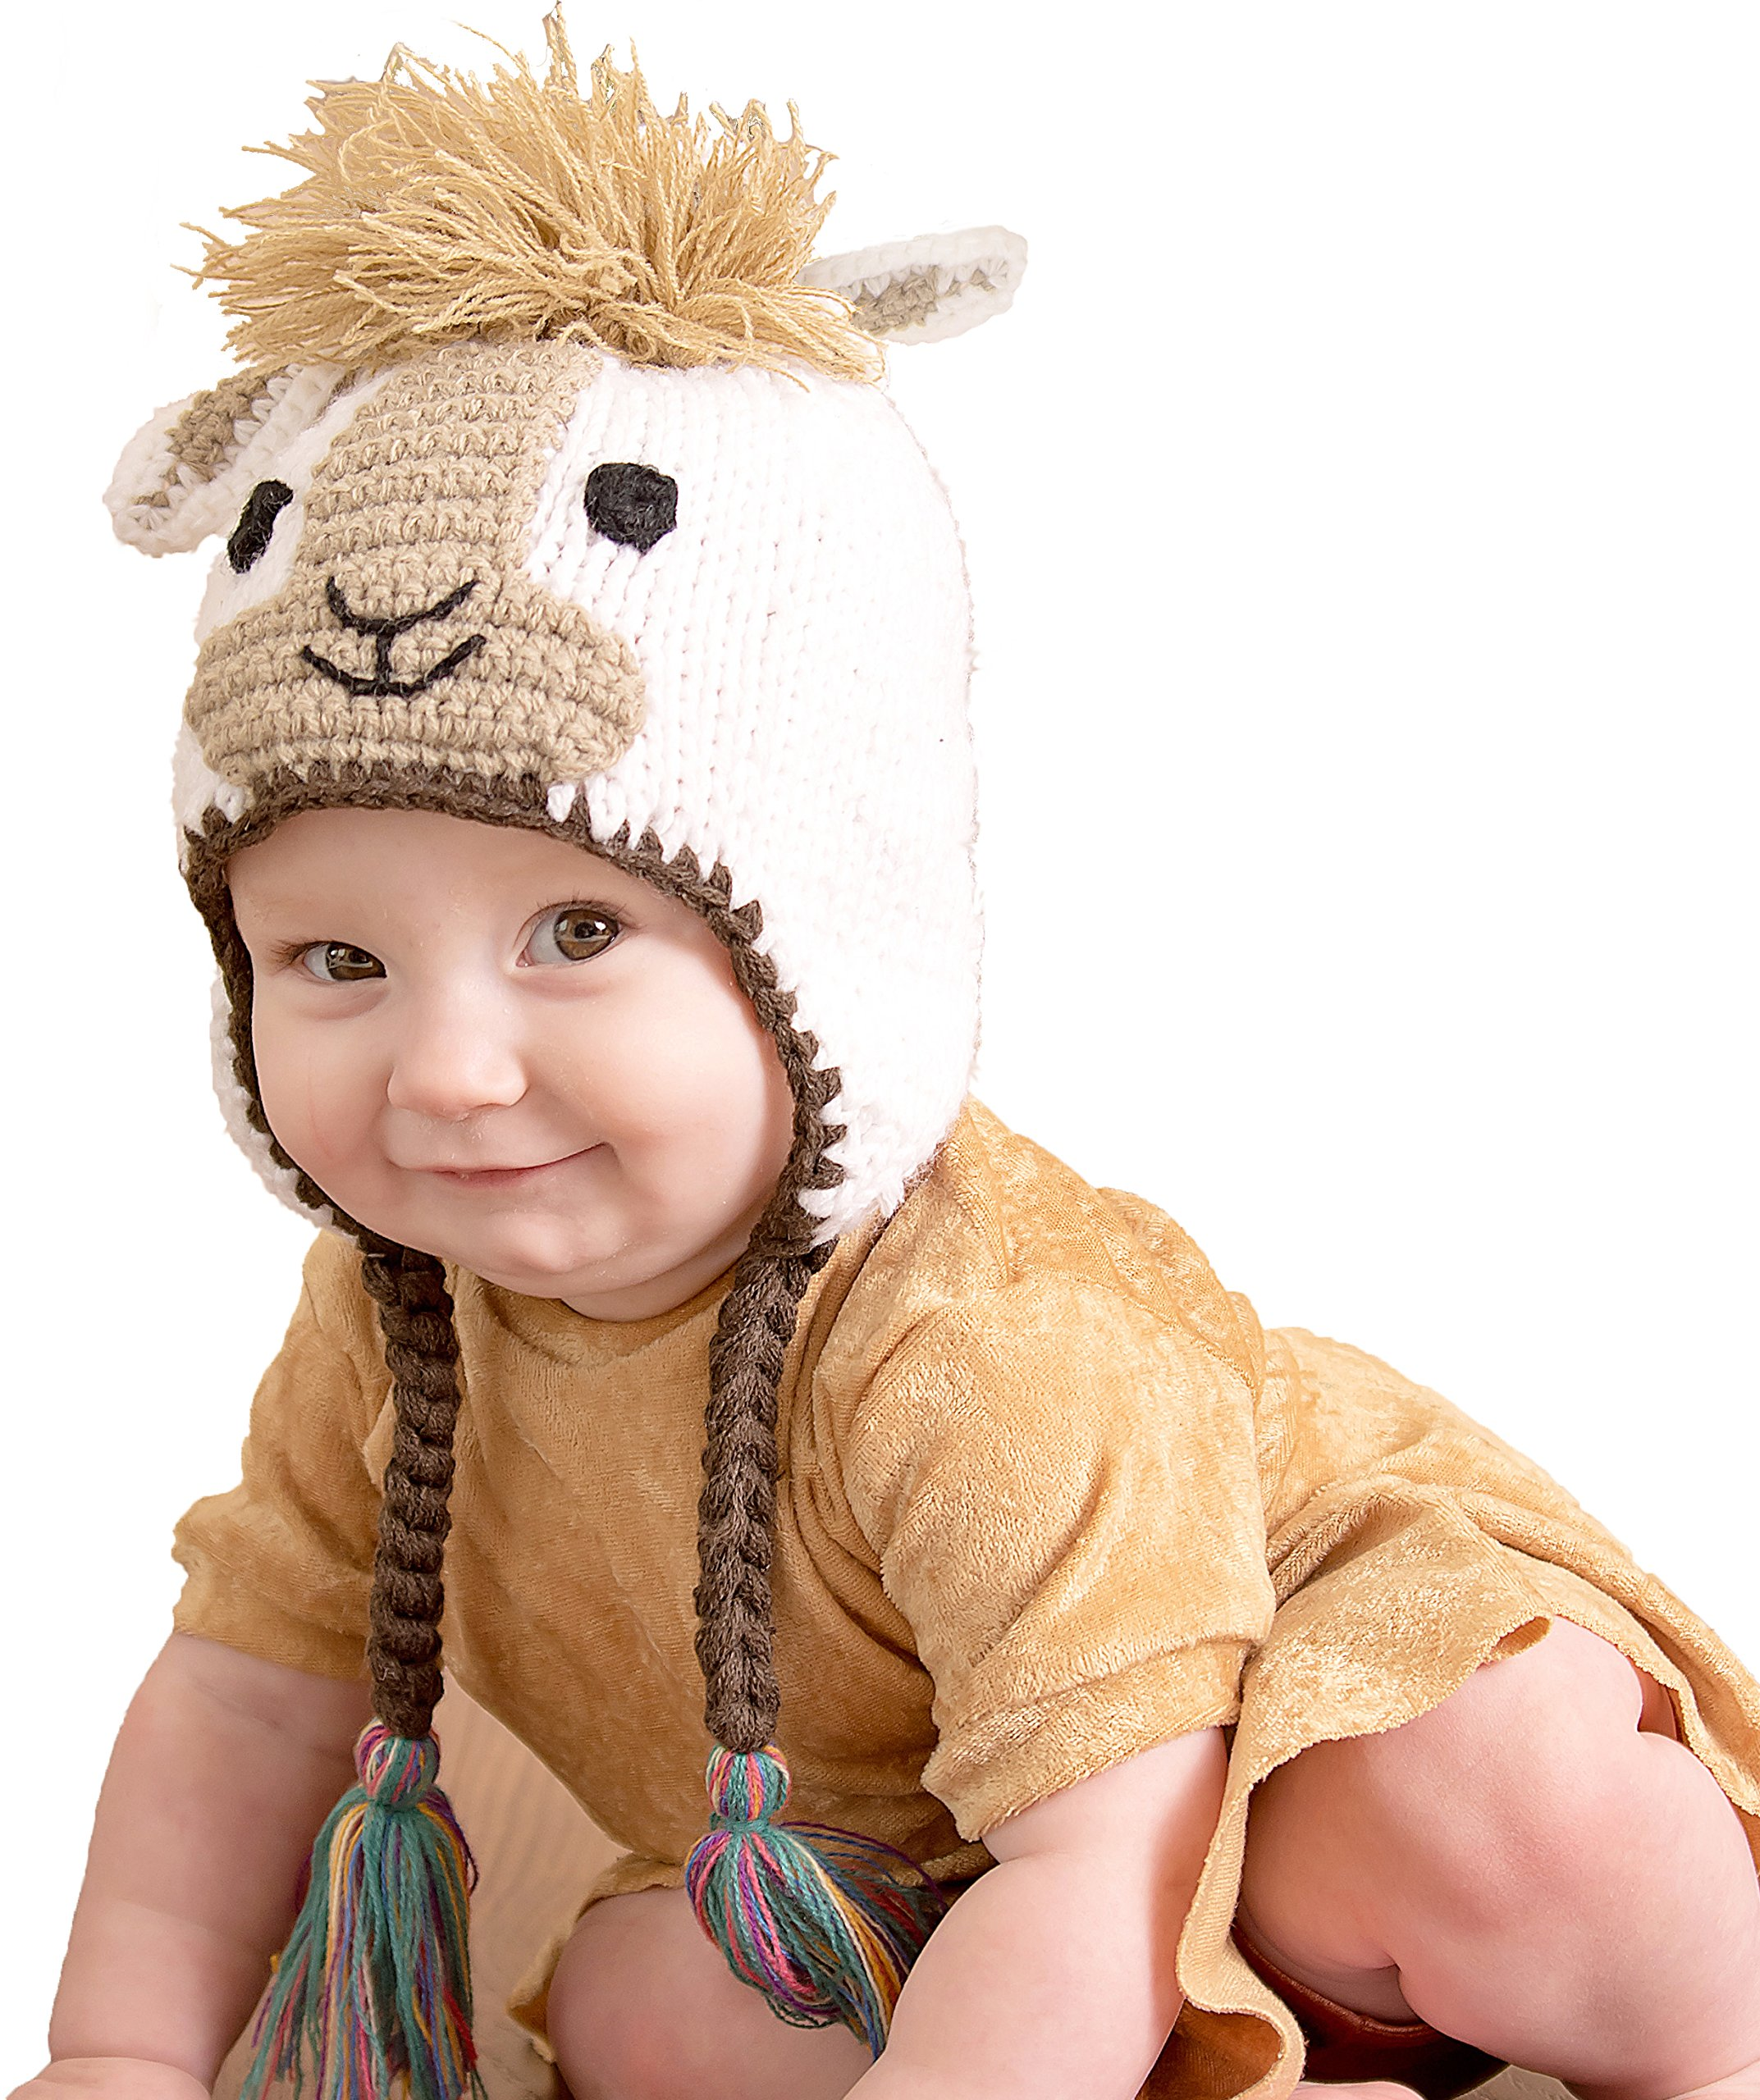 Huggalugs Baby and Toddler Llama Knit Beanie Hat M Cream by Huggalugs